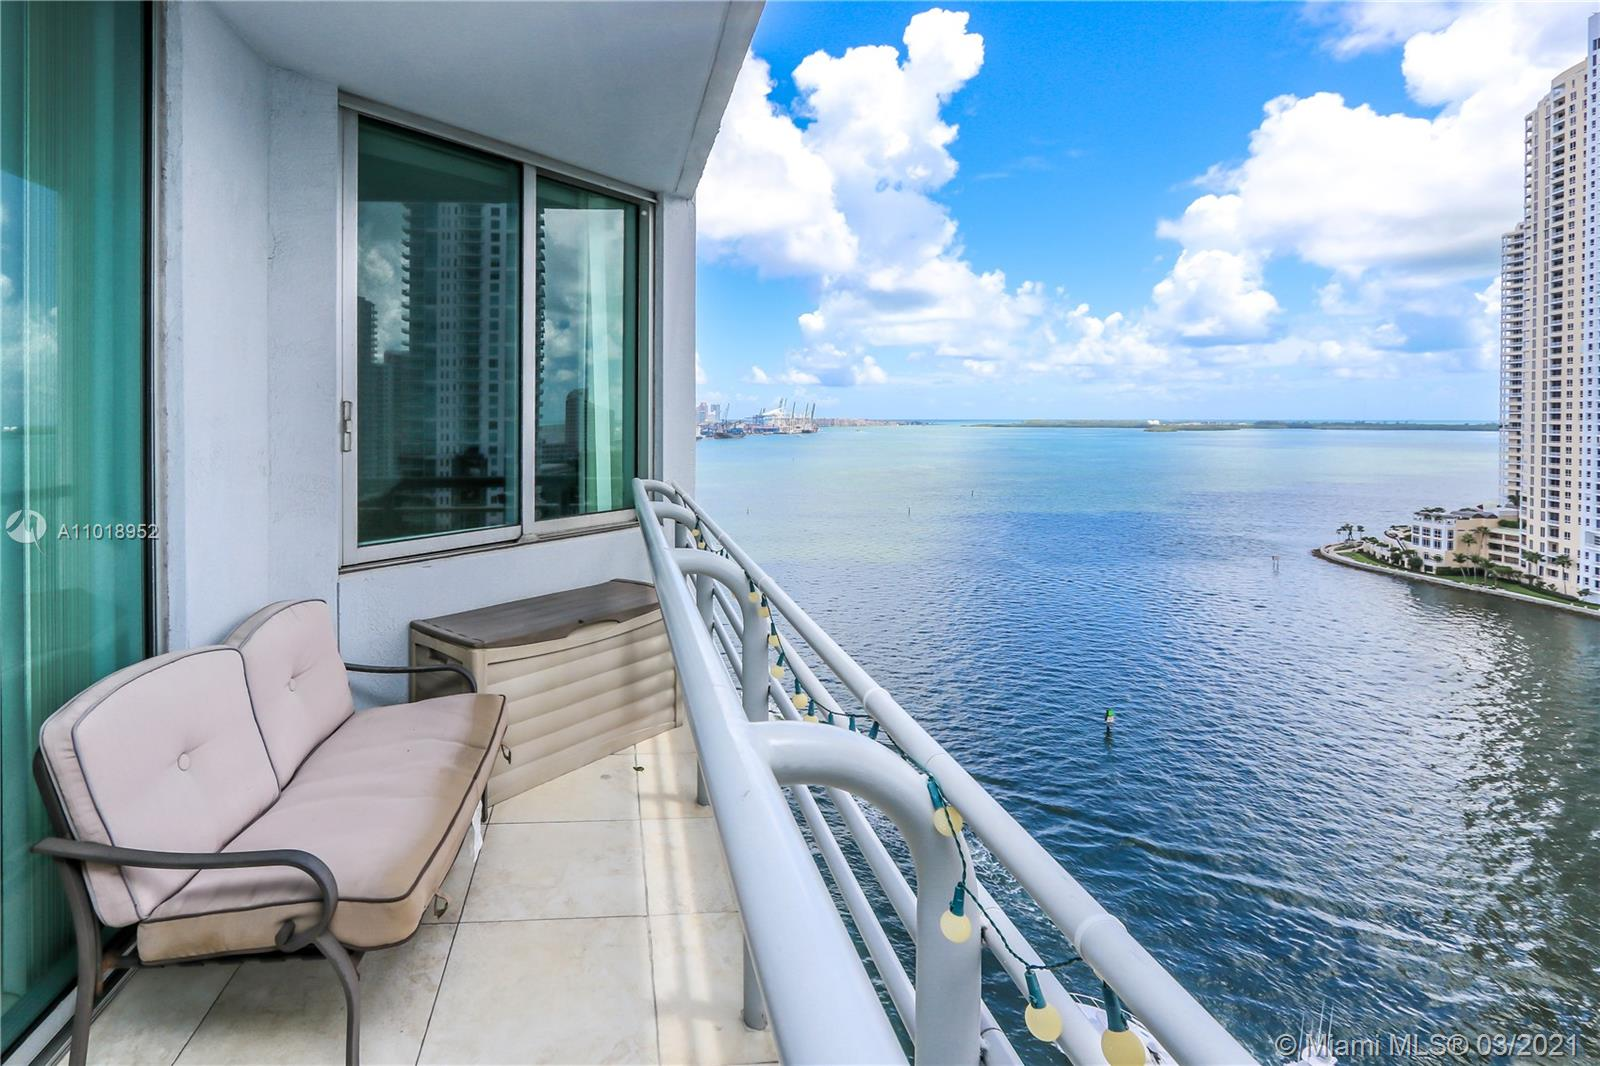 Beautifully split plan 2 bedrooms 2 baths condo with direct views of Biscayne Bay, Miami River and Brickell Skyline. Unit comes with Italian kitchen cabinets and granite countertops and marble baths. Building amenities includes: 2 swimming pools, jacuzzi, 2 party rooms, 2 fitness centers, convenience store, 24 hours security, valet and concierge. Centrally located within minutes to SoBe, Grove, Gables, and Design District. Sales Office in bldg.